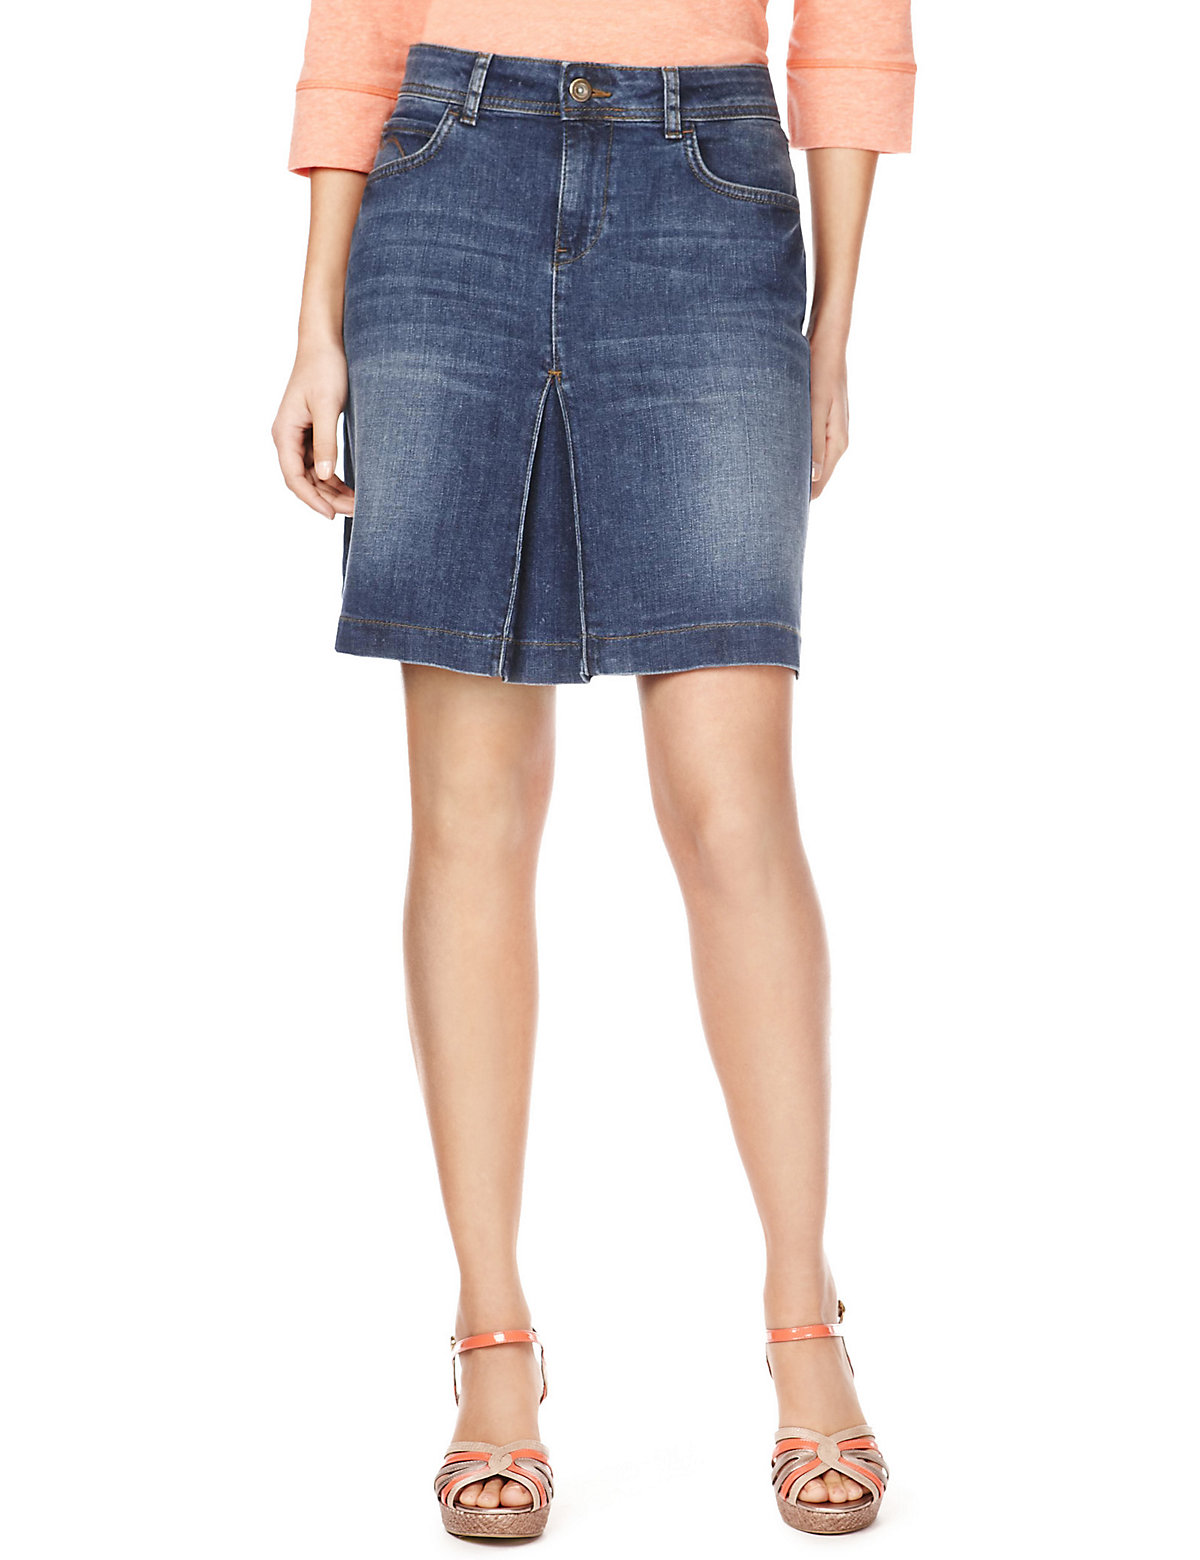 de9f2a1160 Marks and Spencer - - M&5 Dark Blue Washed Look Denim Mini Skirt - Size 8  to 16